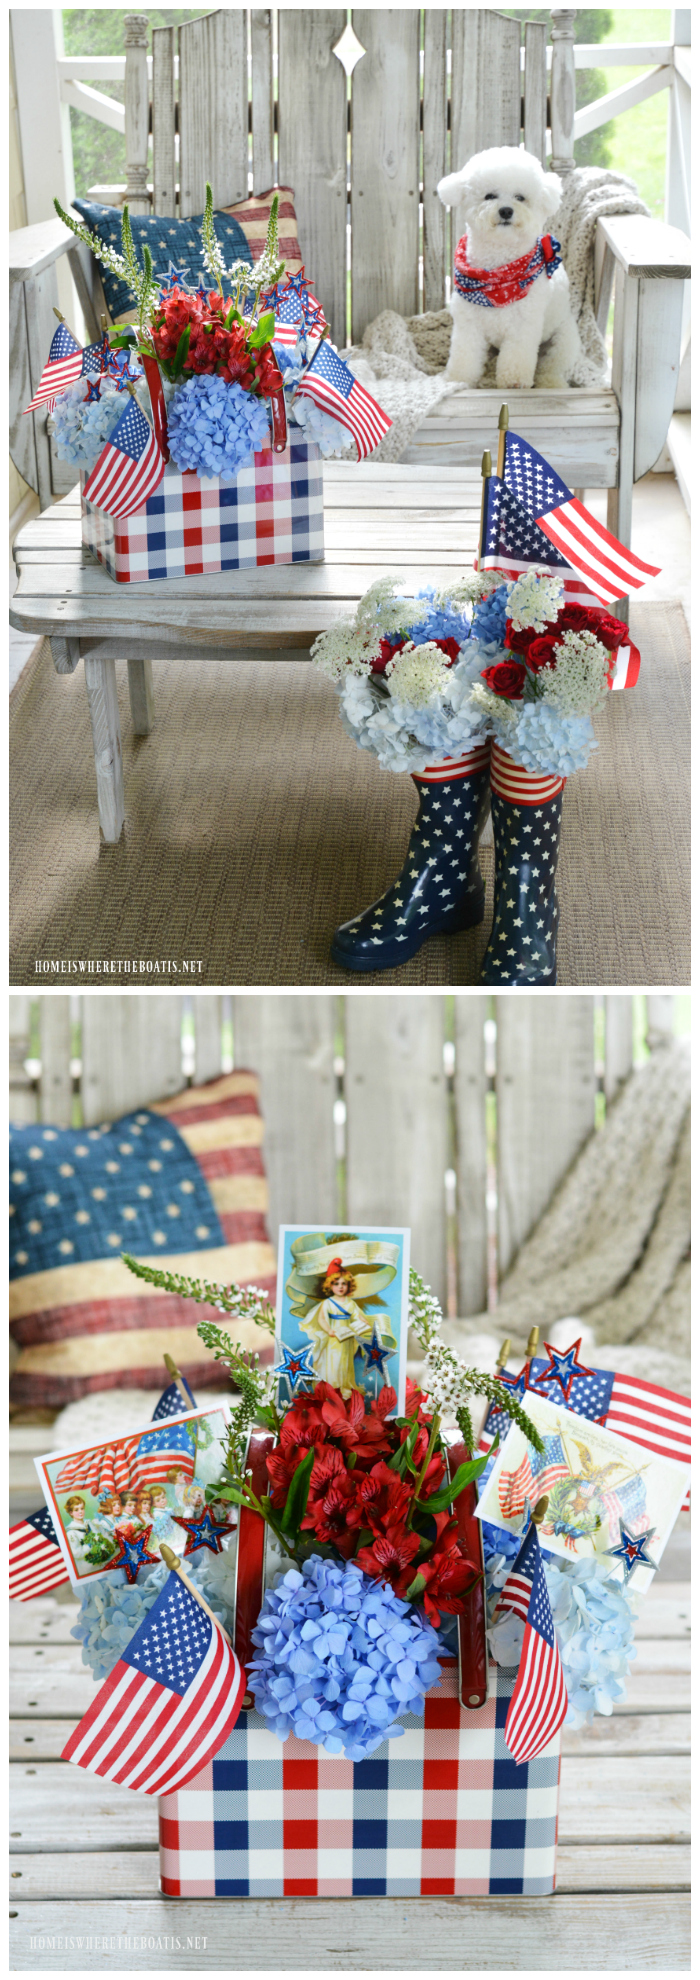 Patriotic porch and arrangement in picnic tin with postcards